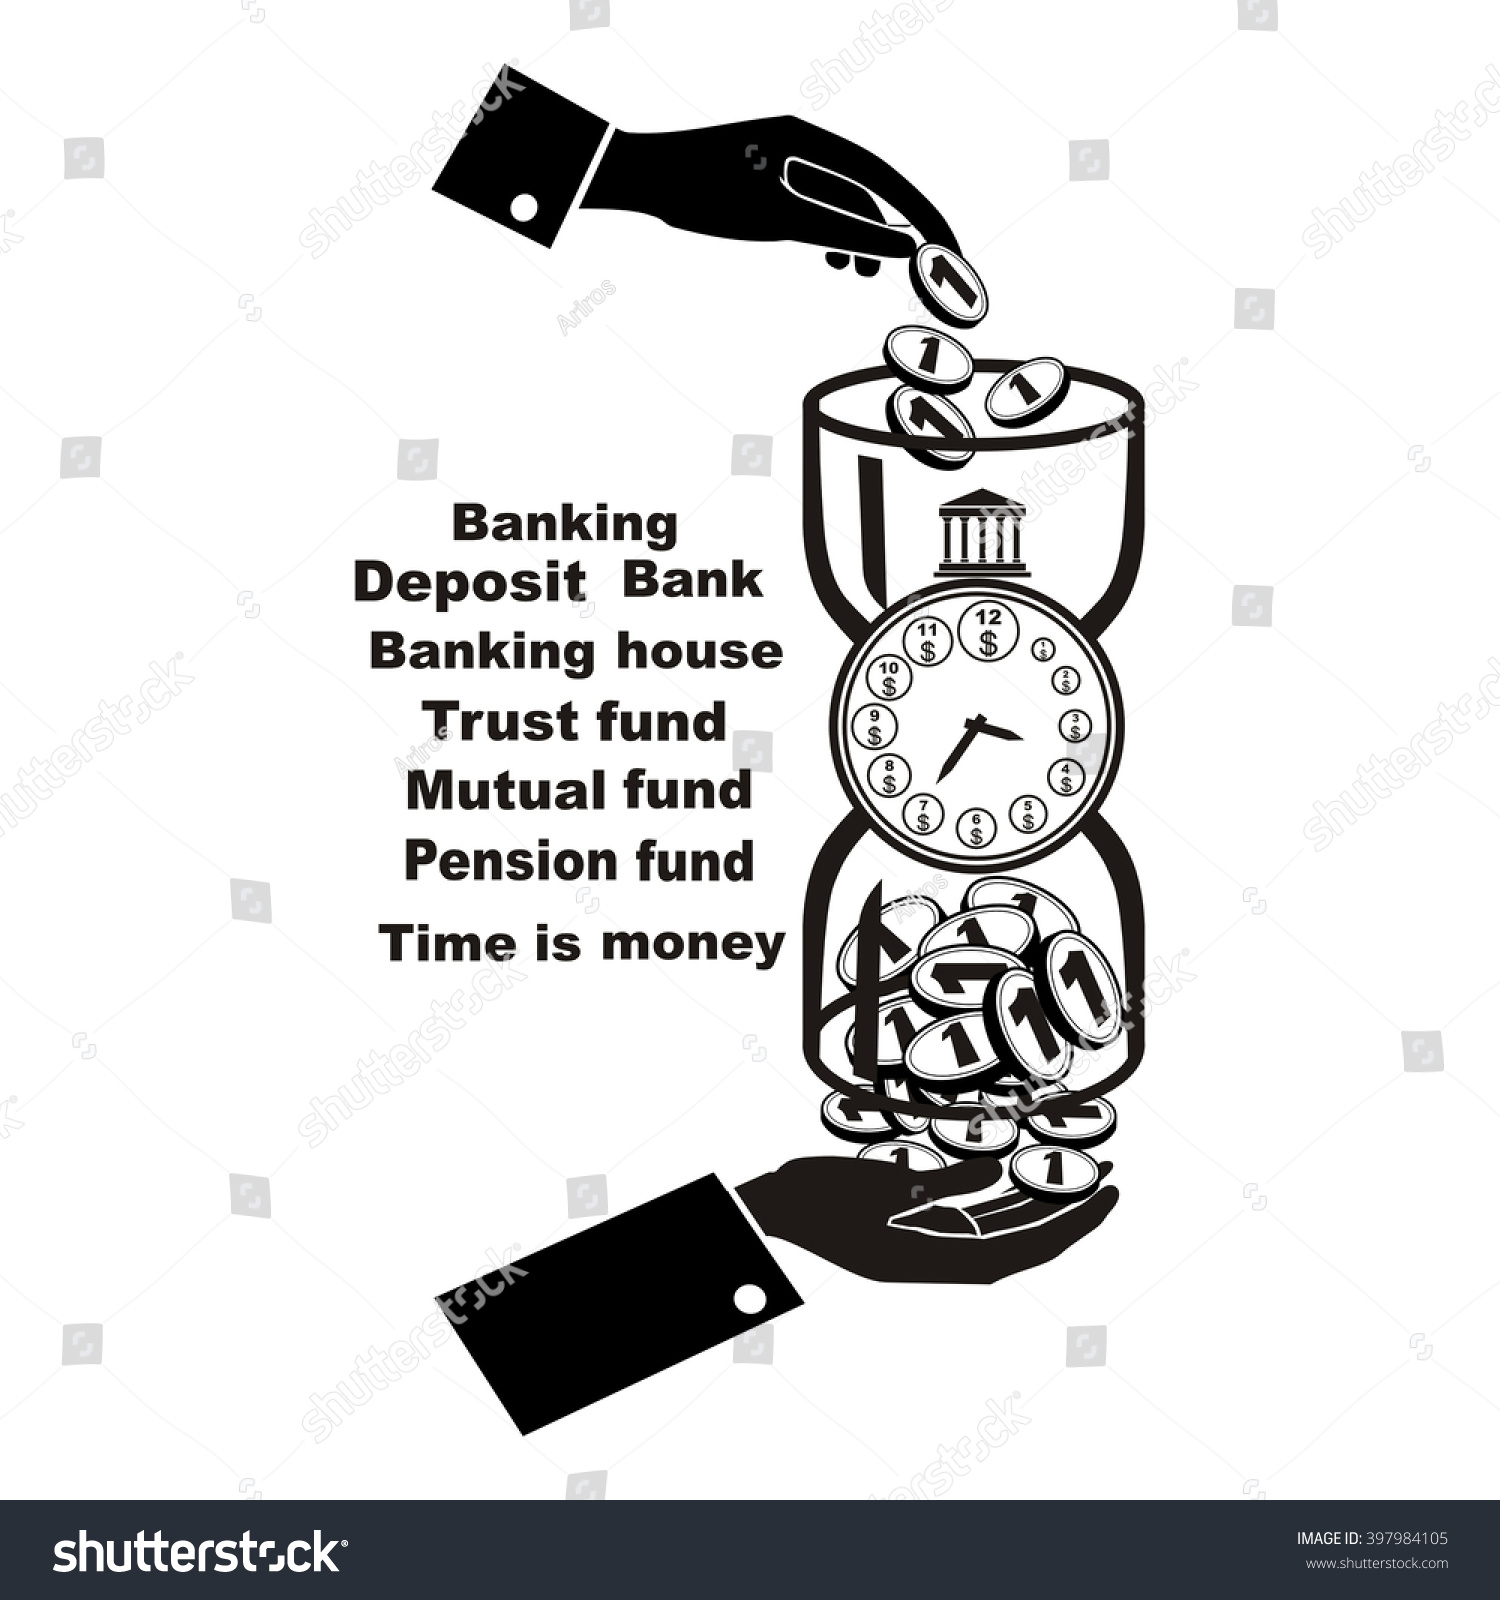 Banking symbol bank symbol pension fund stock vector 397984105 banking symbol bank symbol pension fund symbol mutual fund symbol computer drawing biocorpaavc Images